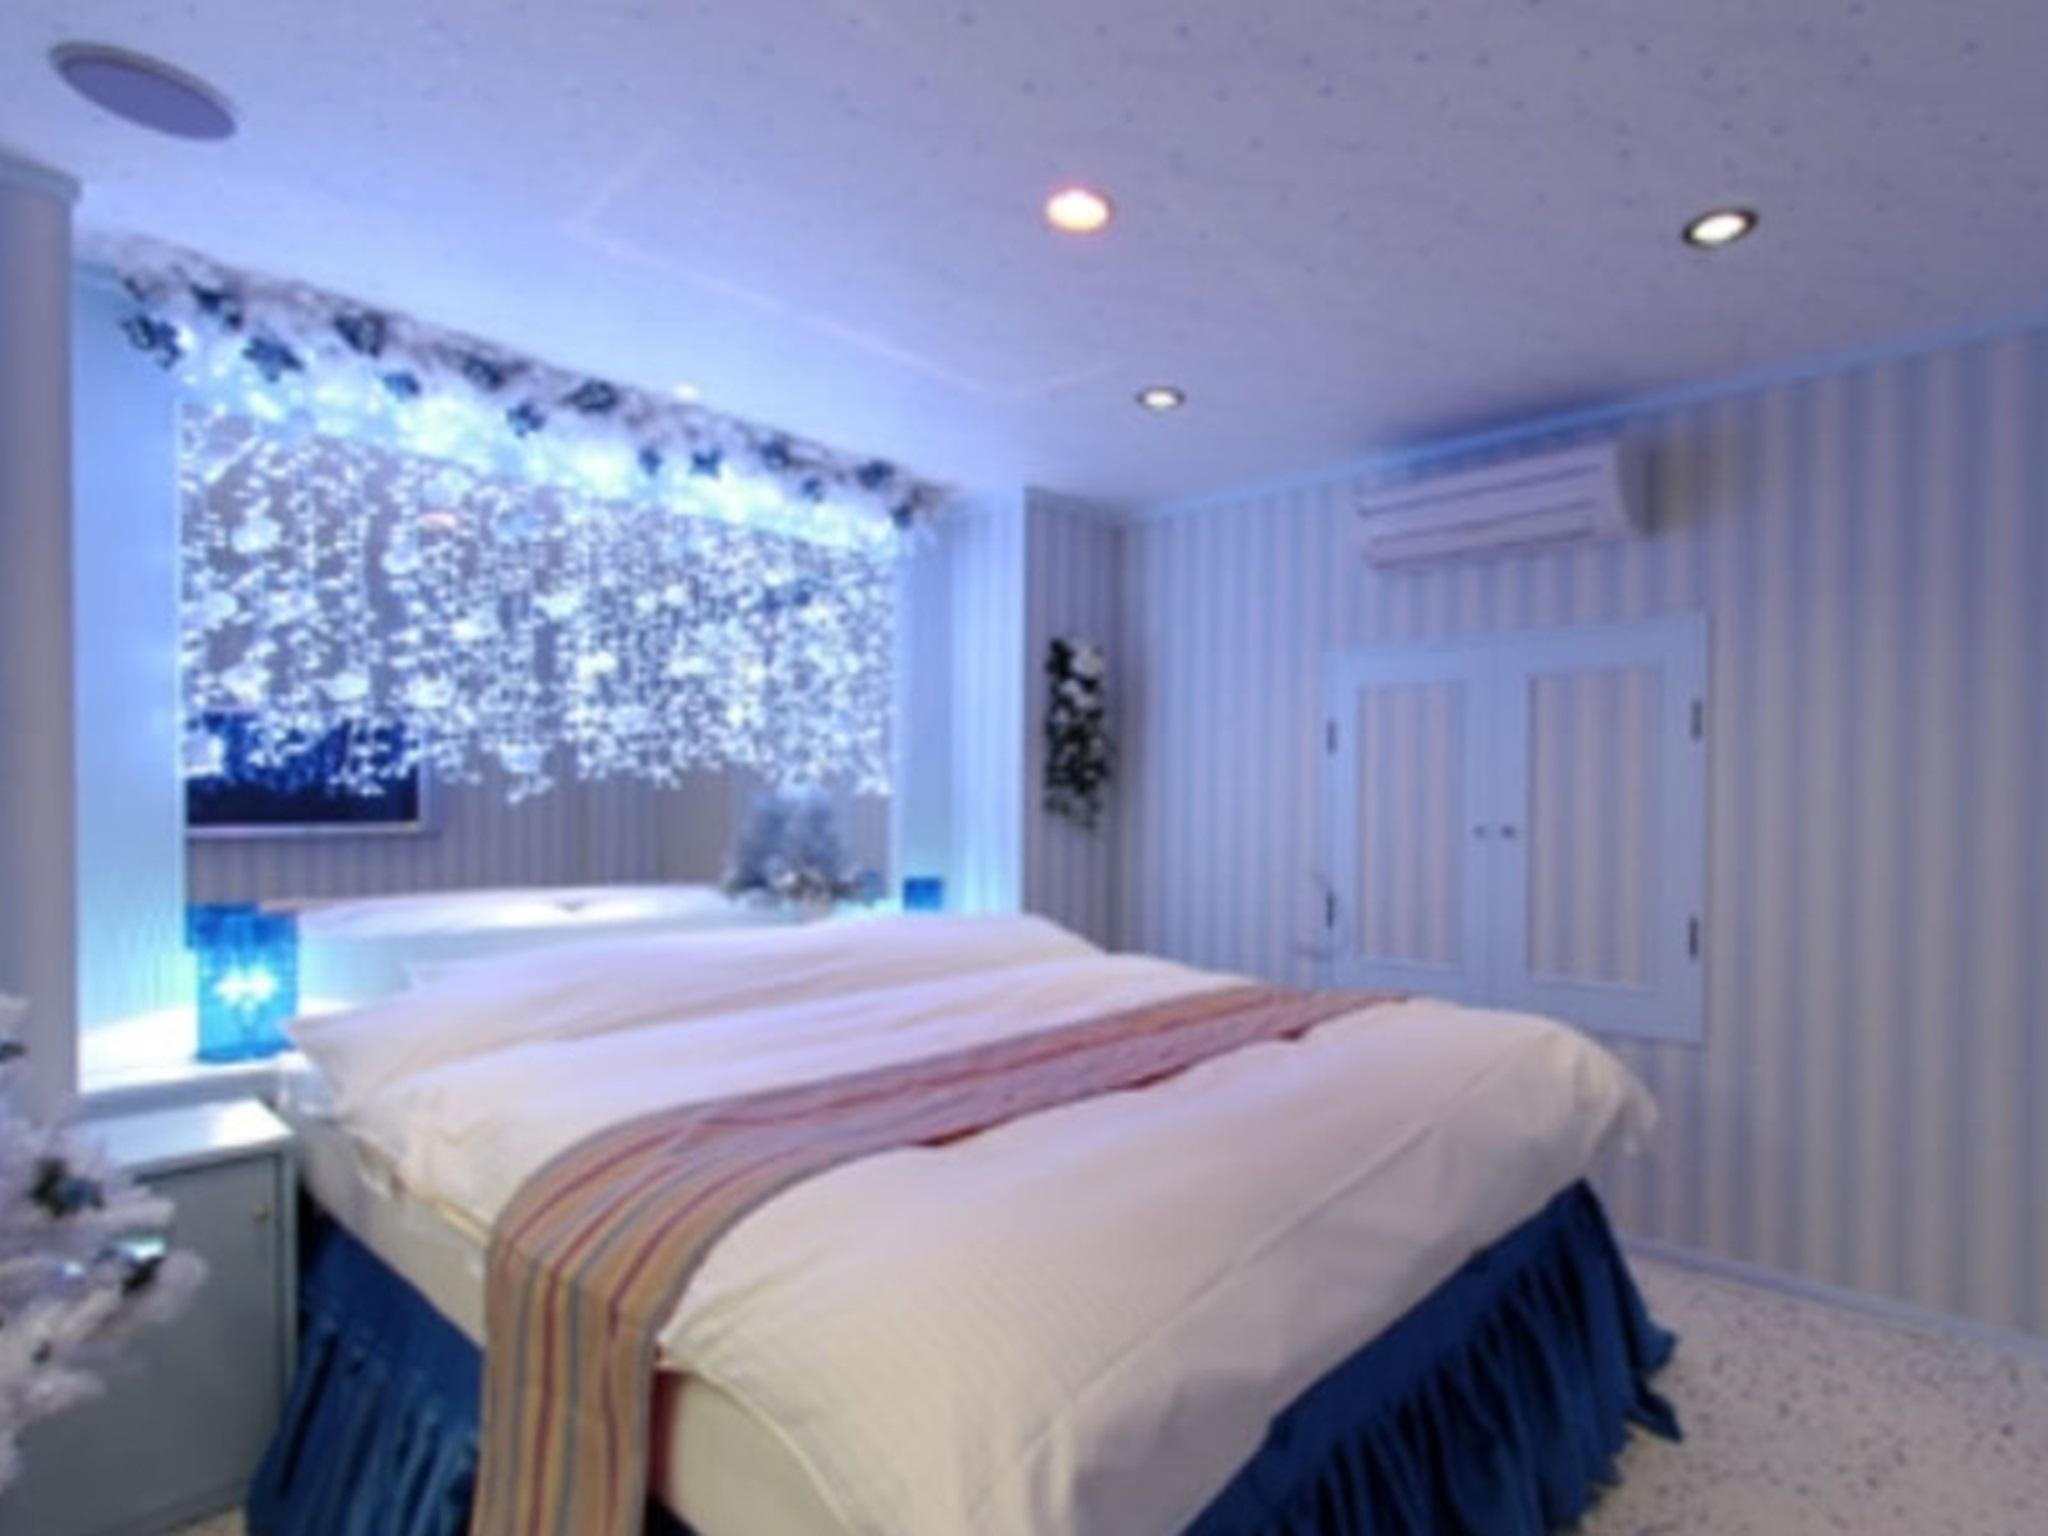 Hotel Little Chapel Christmas - Adult Only, Wakayama